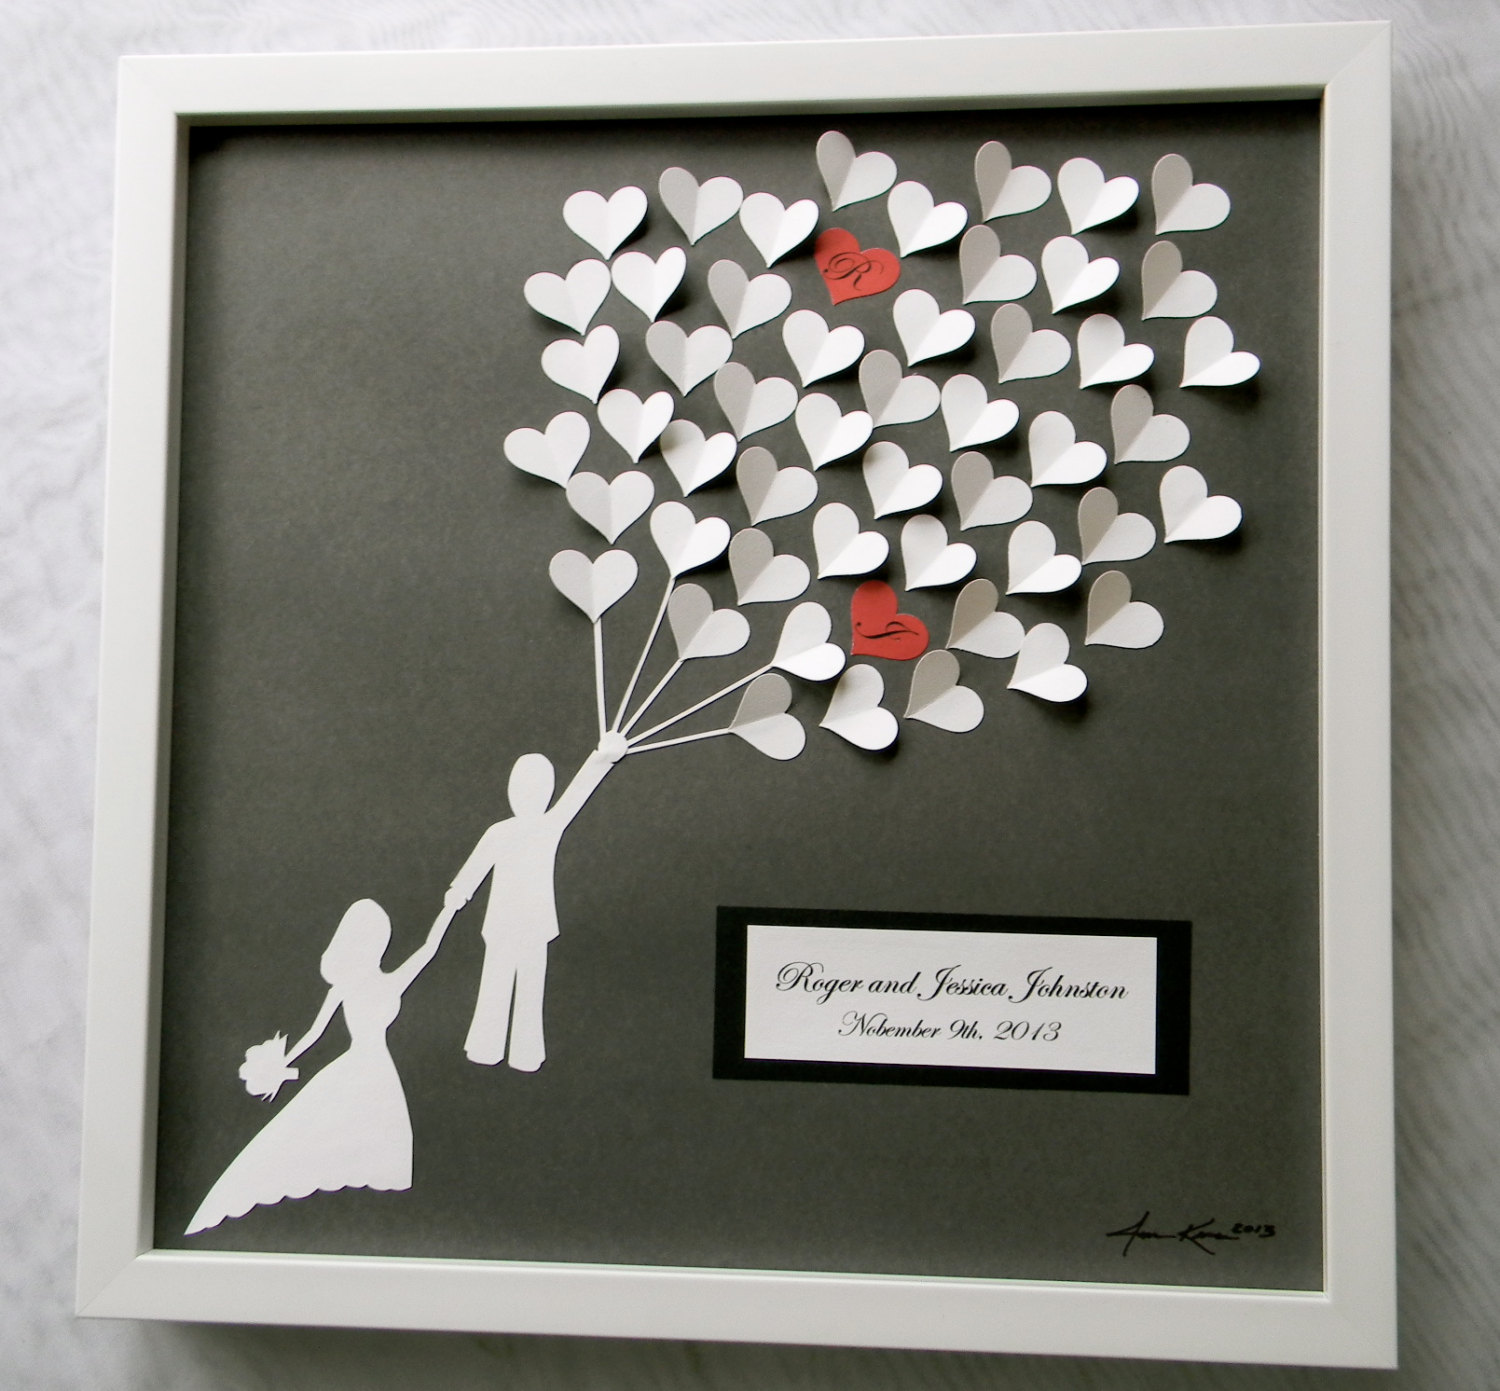 Best wedding gift ideas for someone special 2